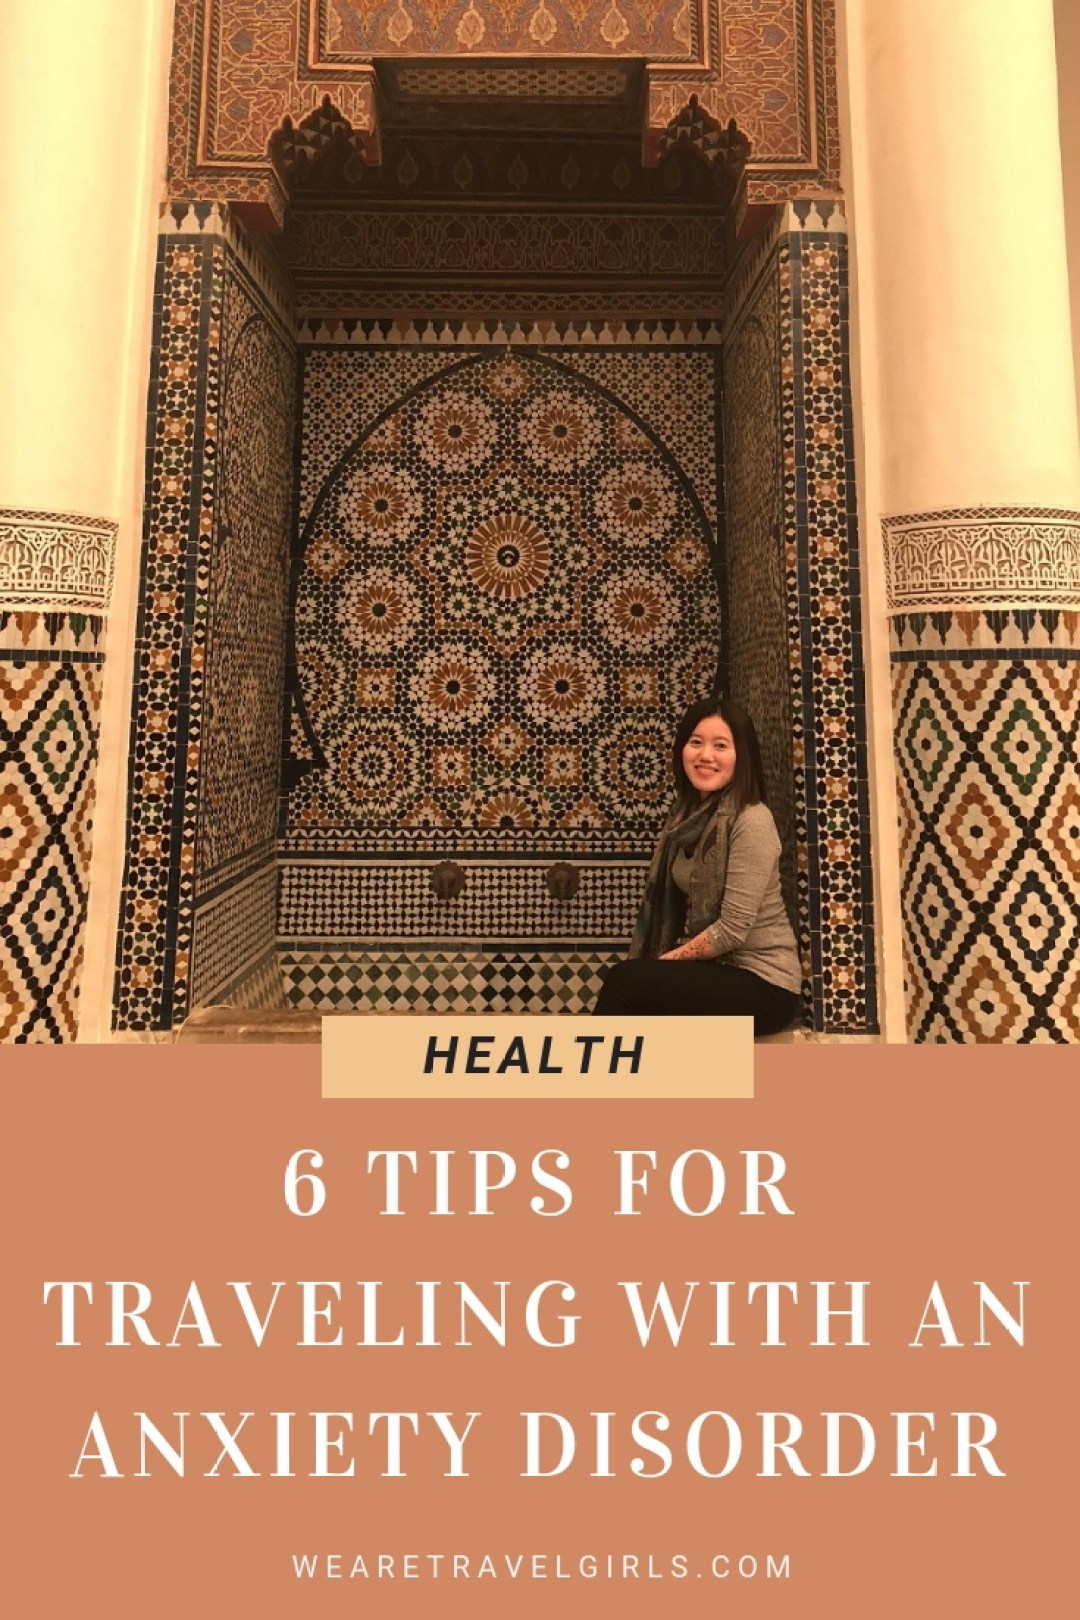 6 Tips For Traveling With Anxiety Disorder